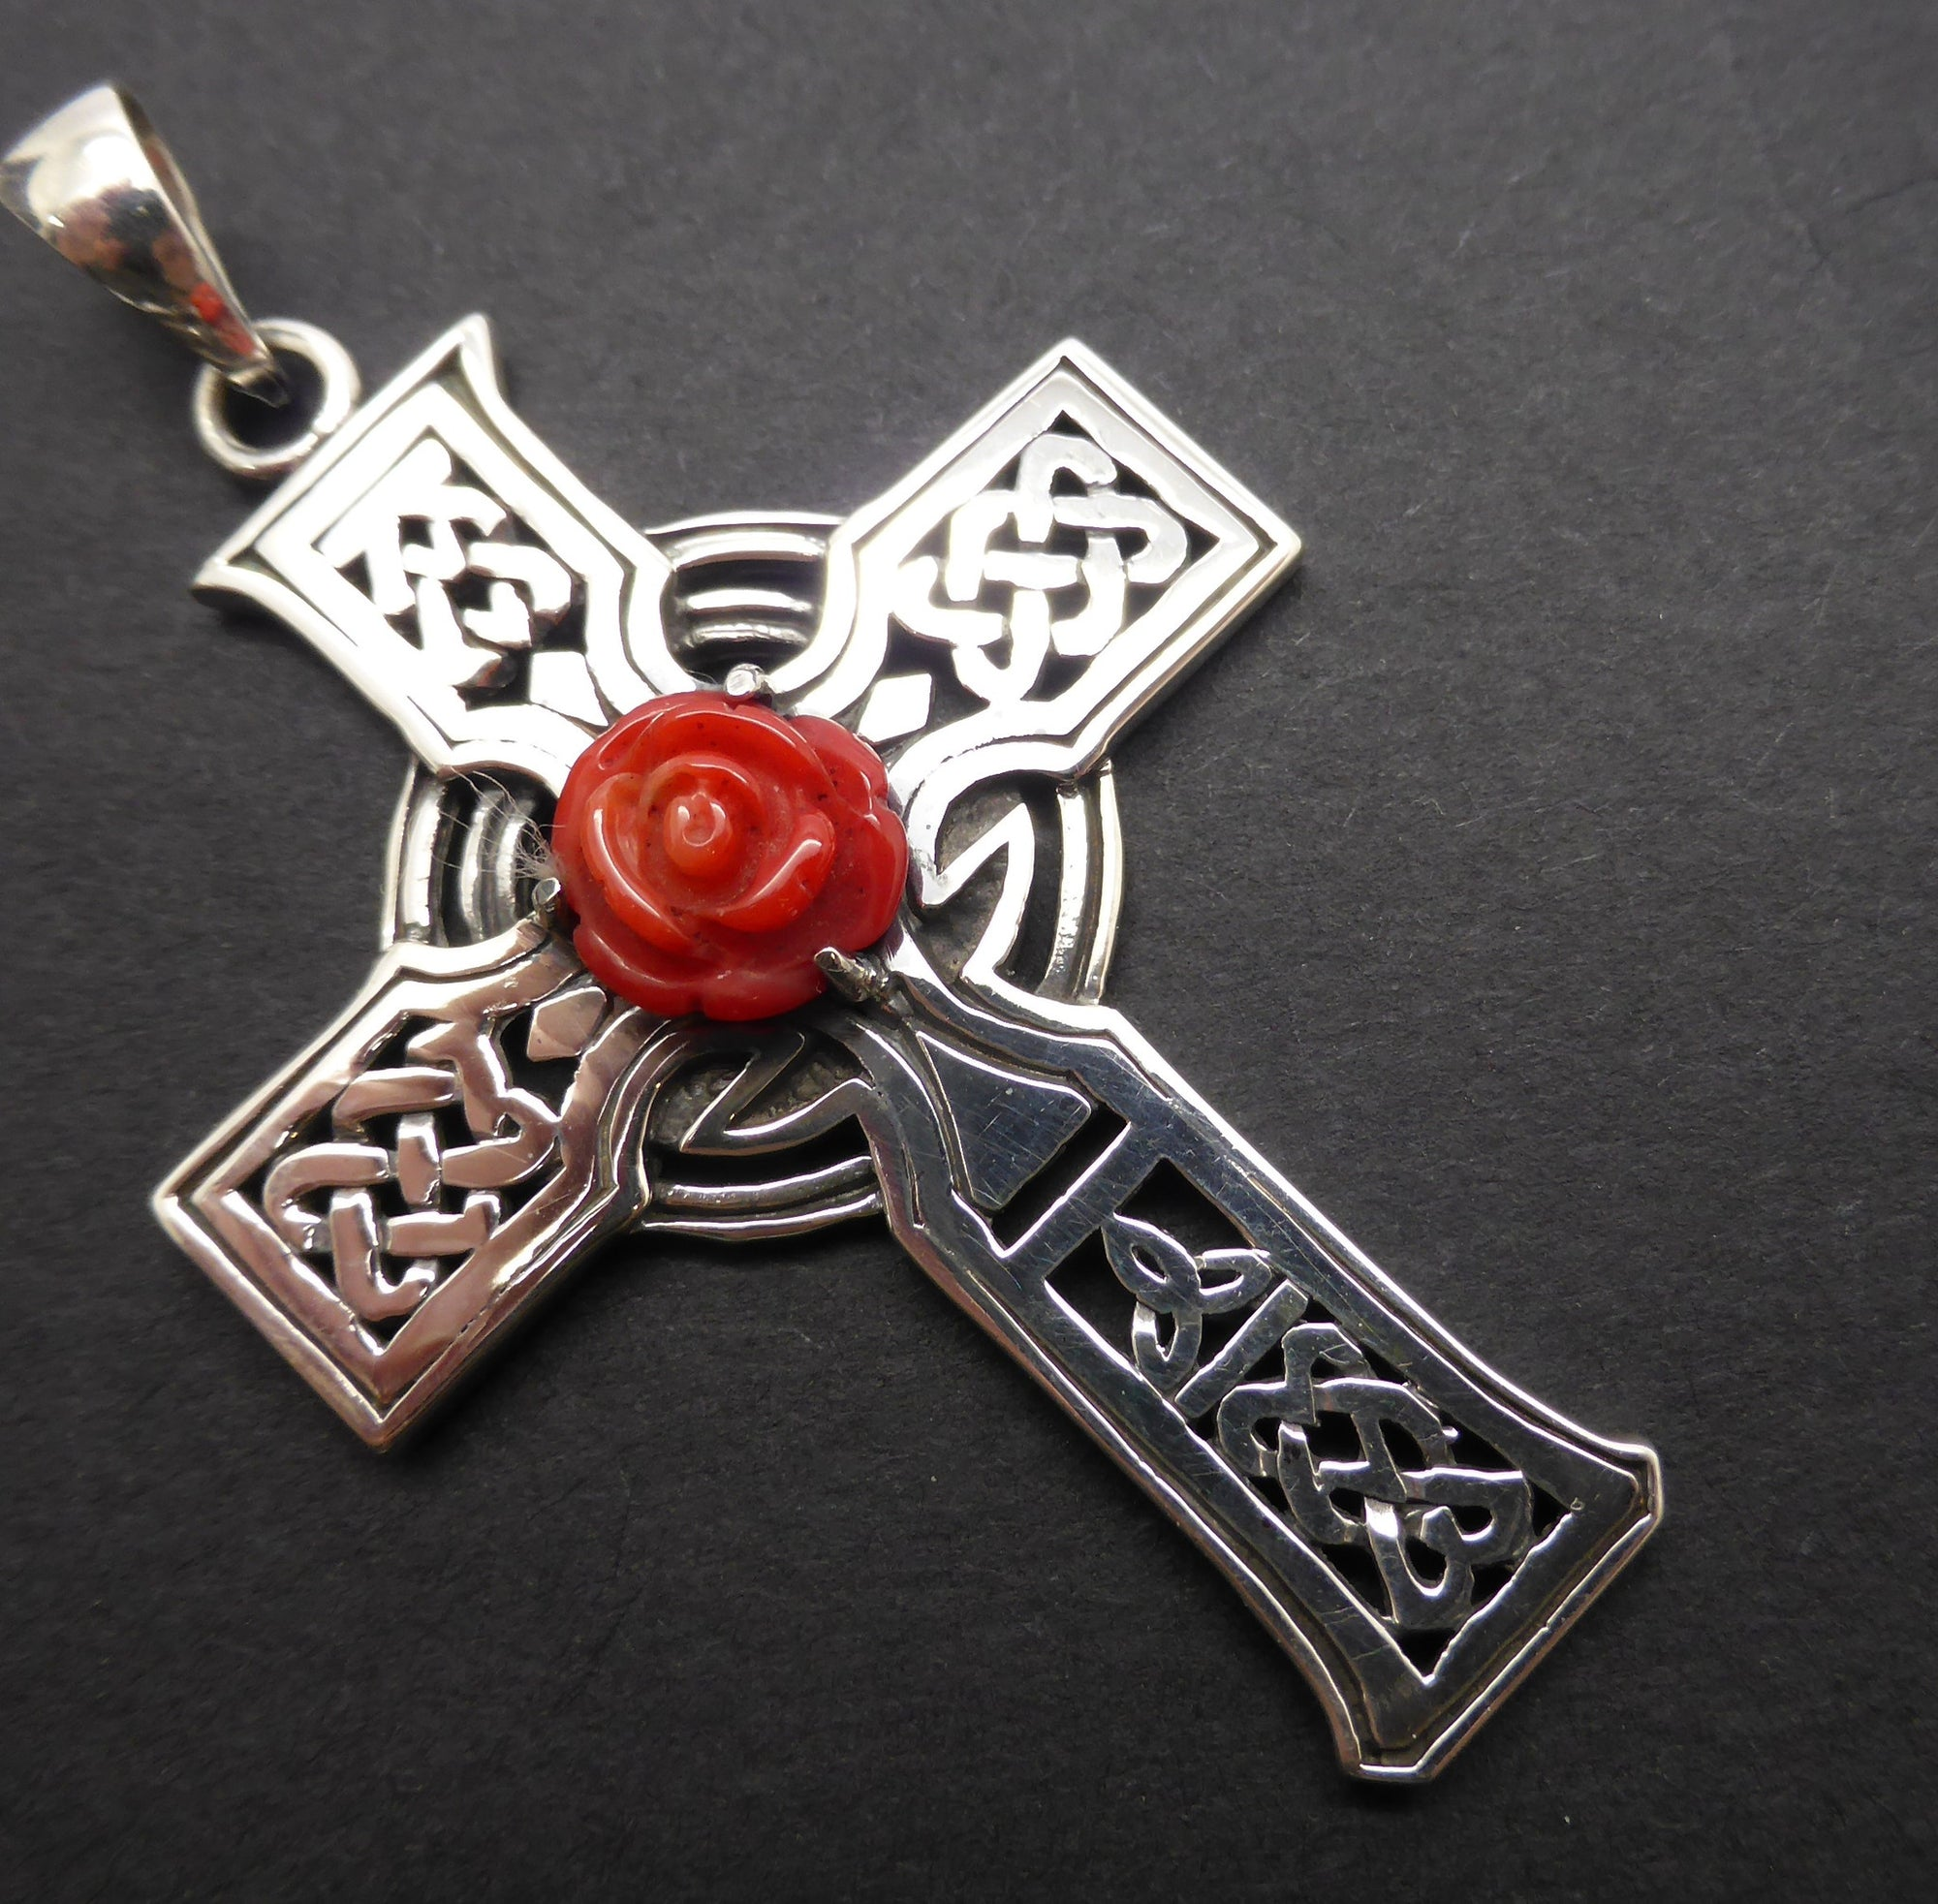 Pendant celtic cross red coral rose 925 sterling silver crystal heart majestic celtic rosy cross pendant in 925 sterling silver rose hand carved from natural red aloadofball Images